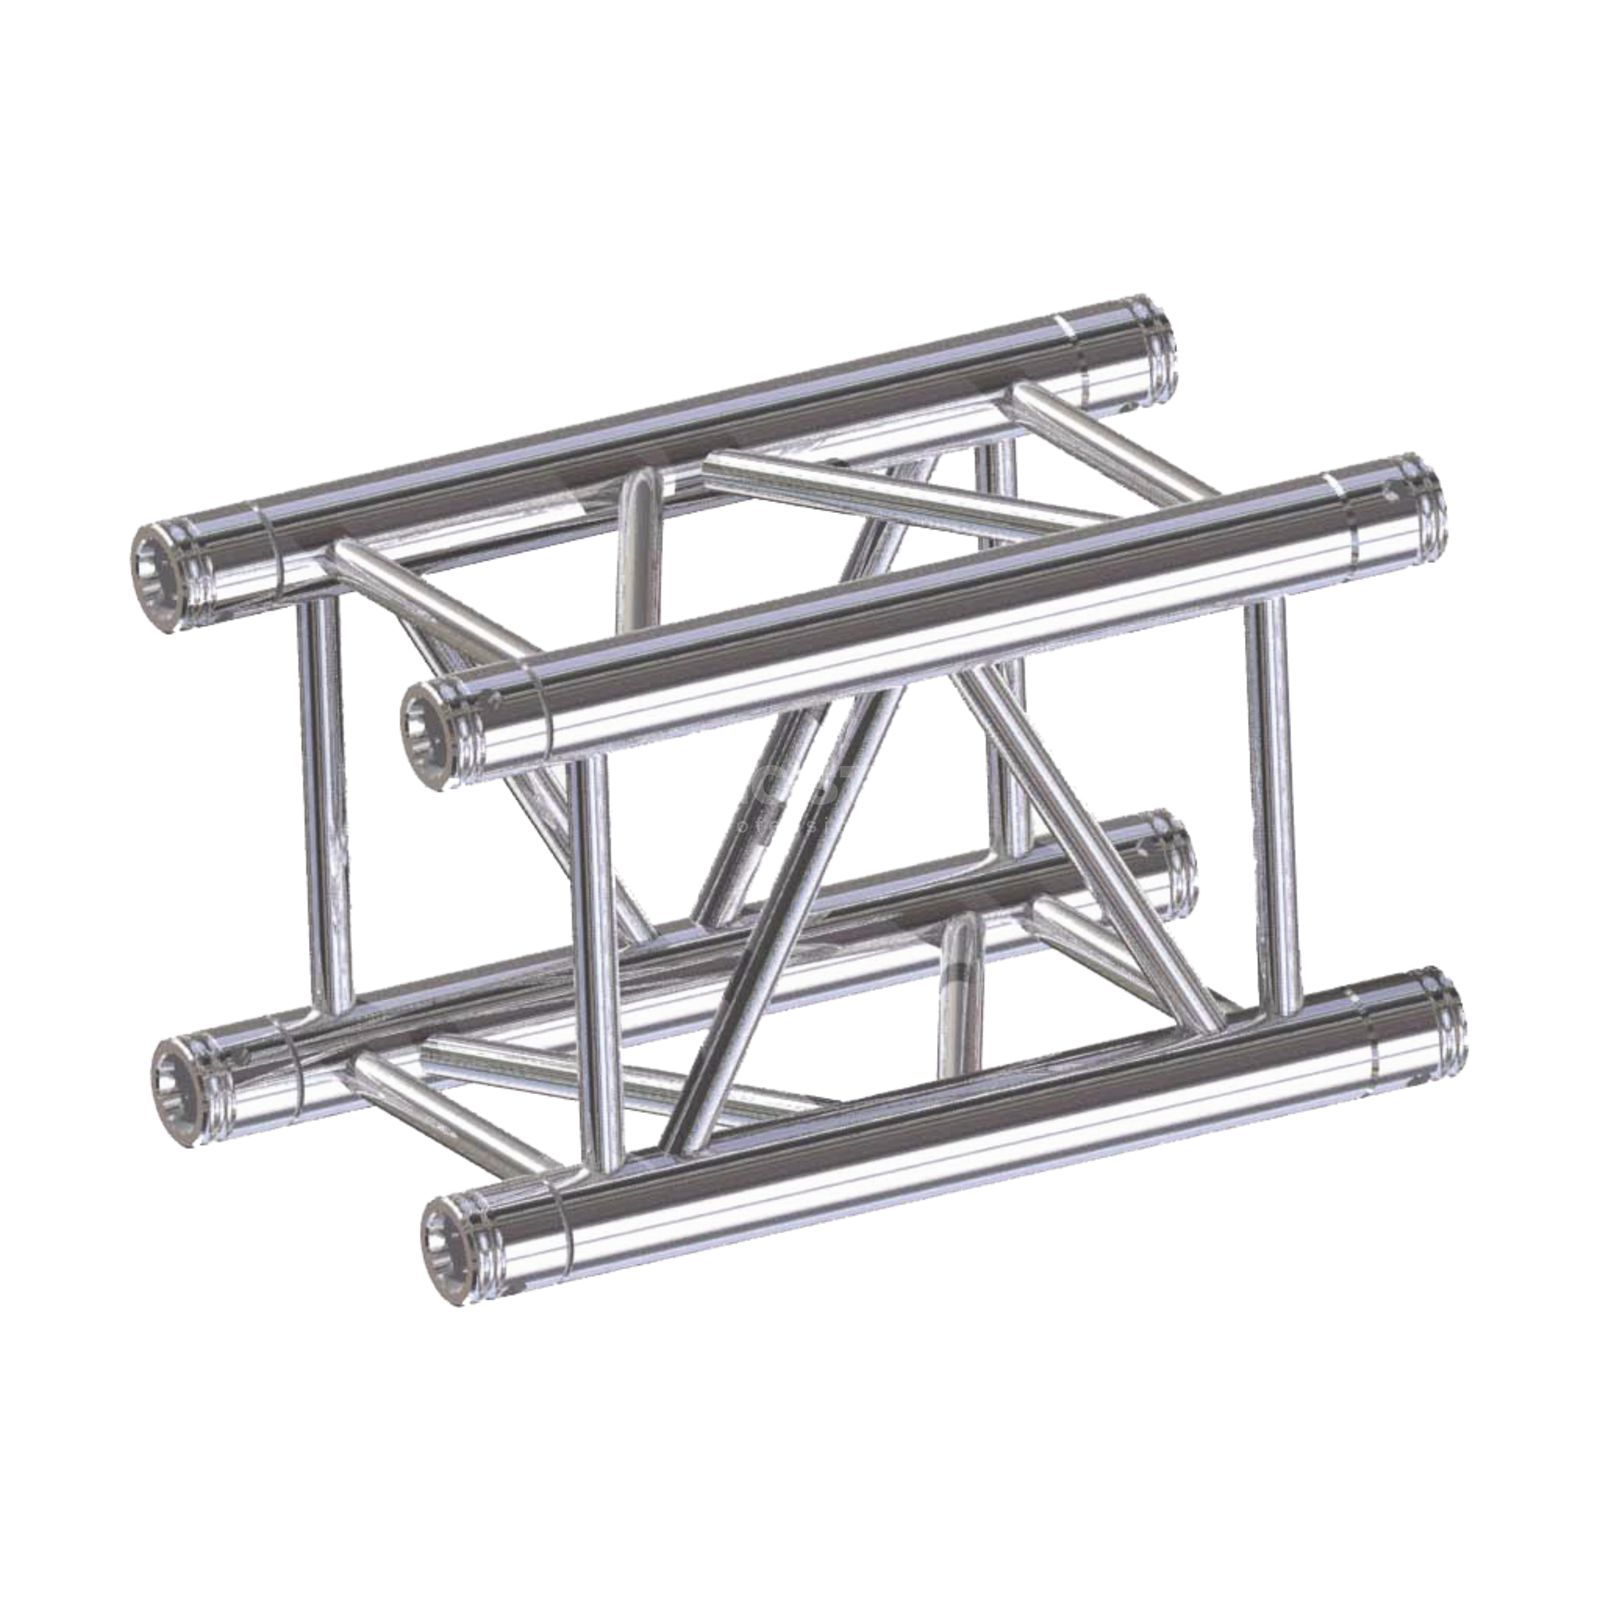 Global Truss F34P, 200cm, 4-Point Truss 3mm Produktbillede